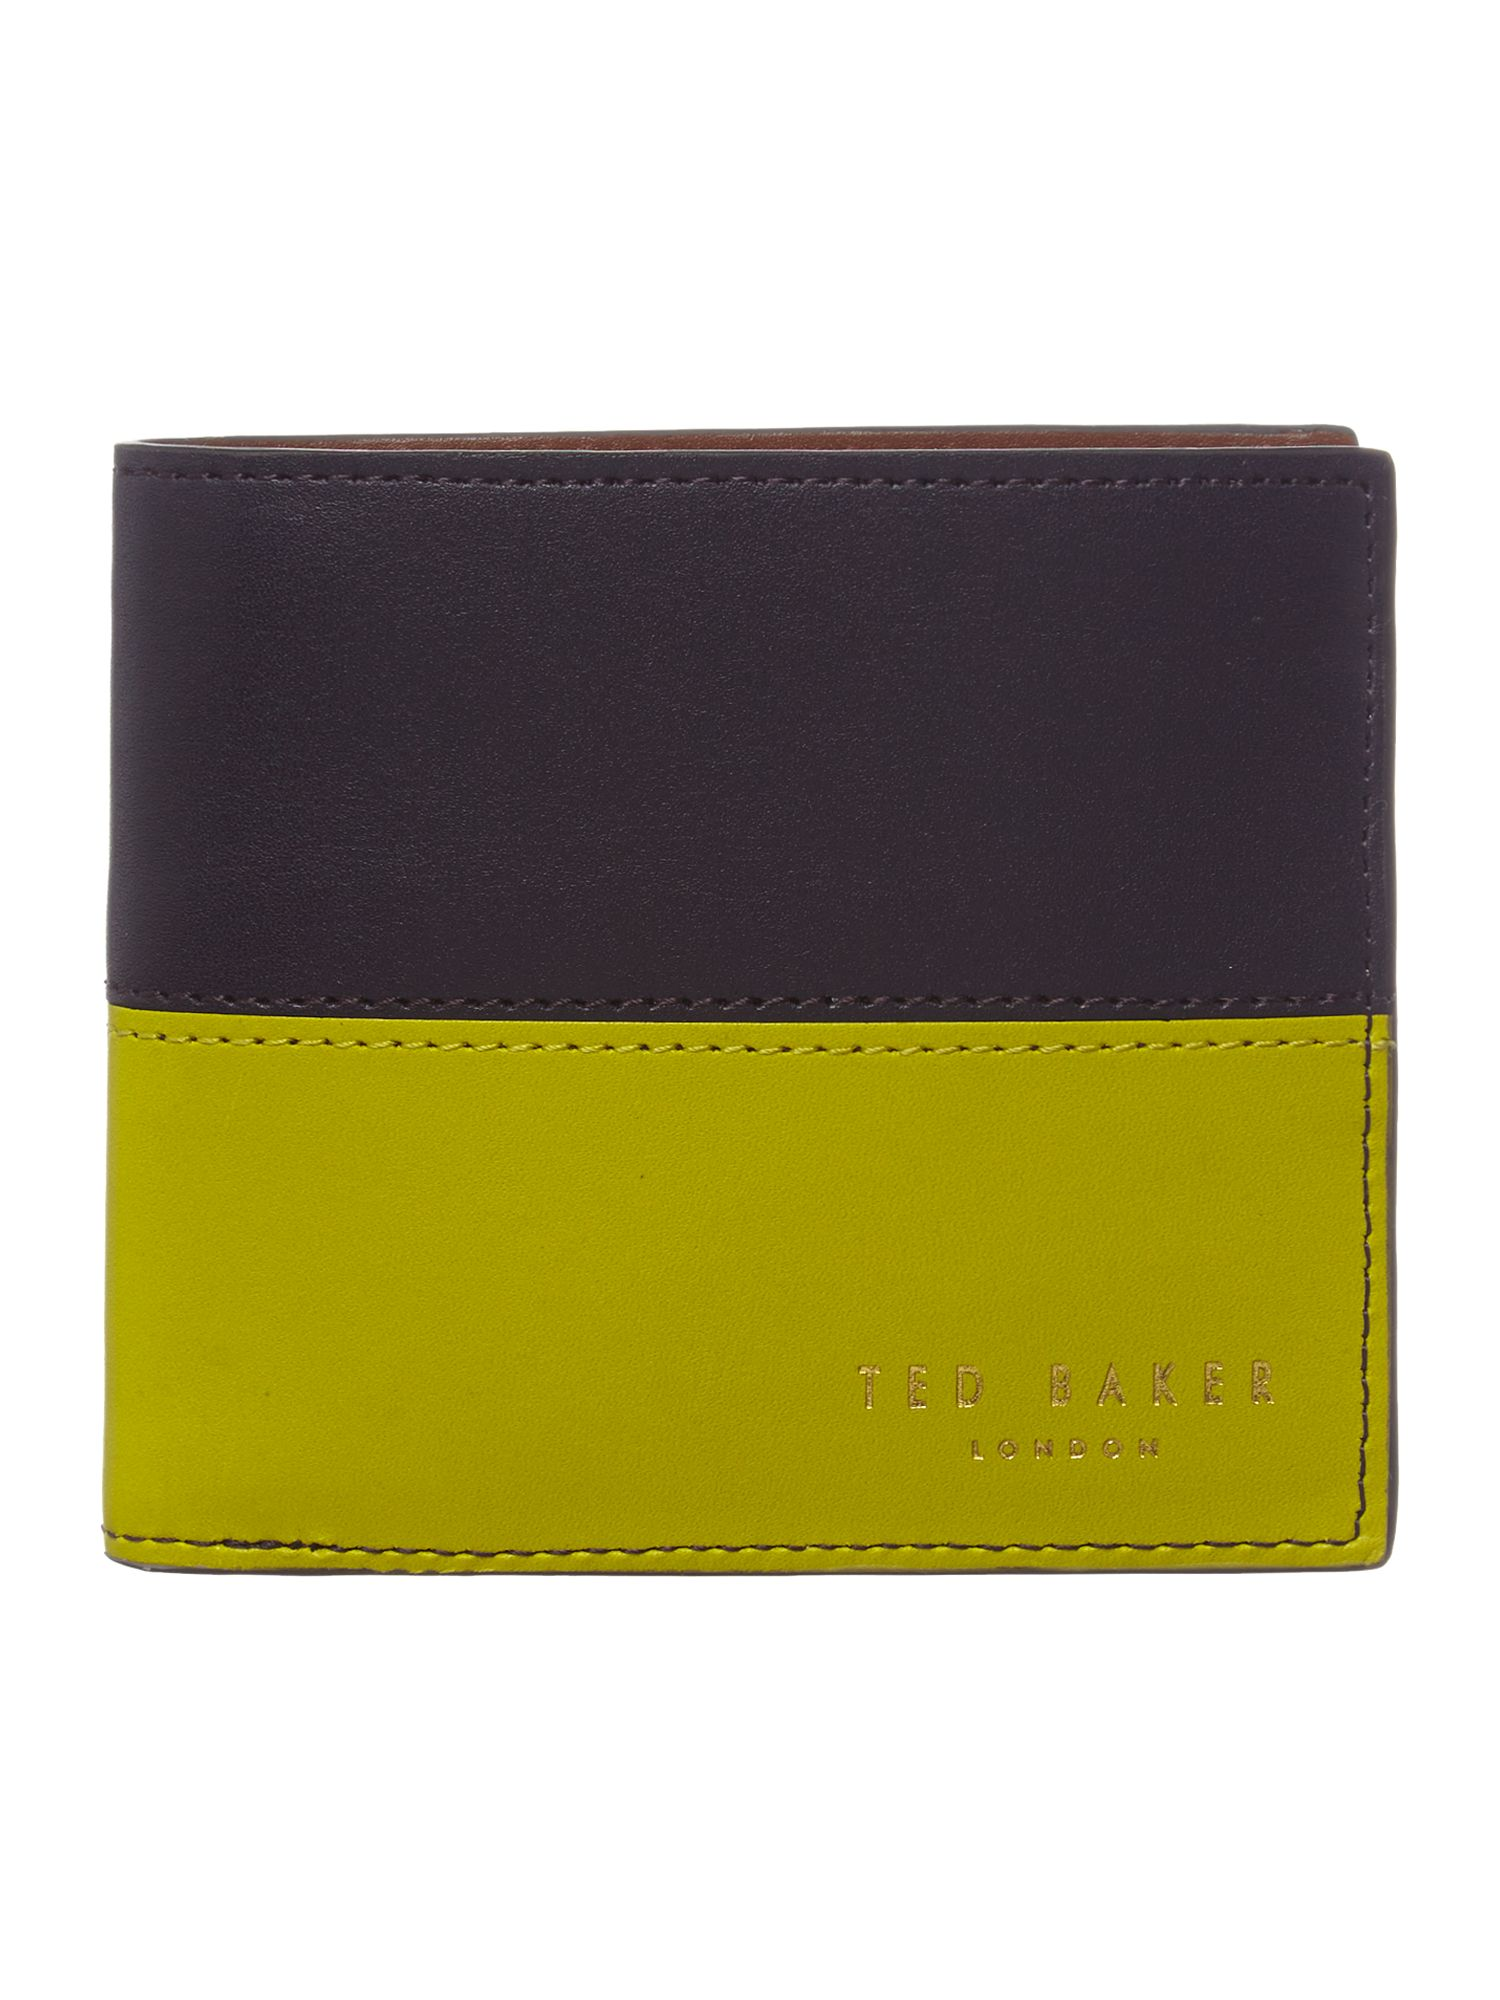 Colour block coin wallet